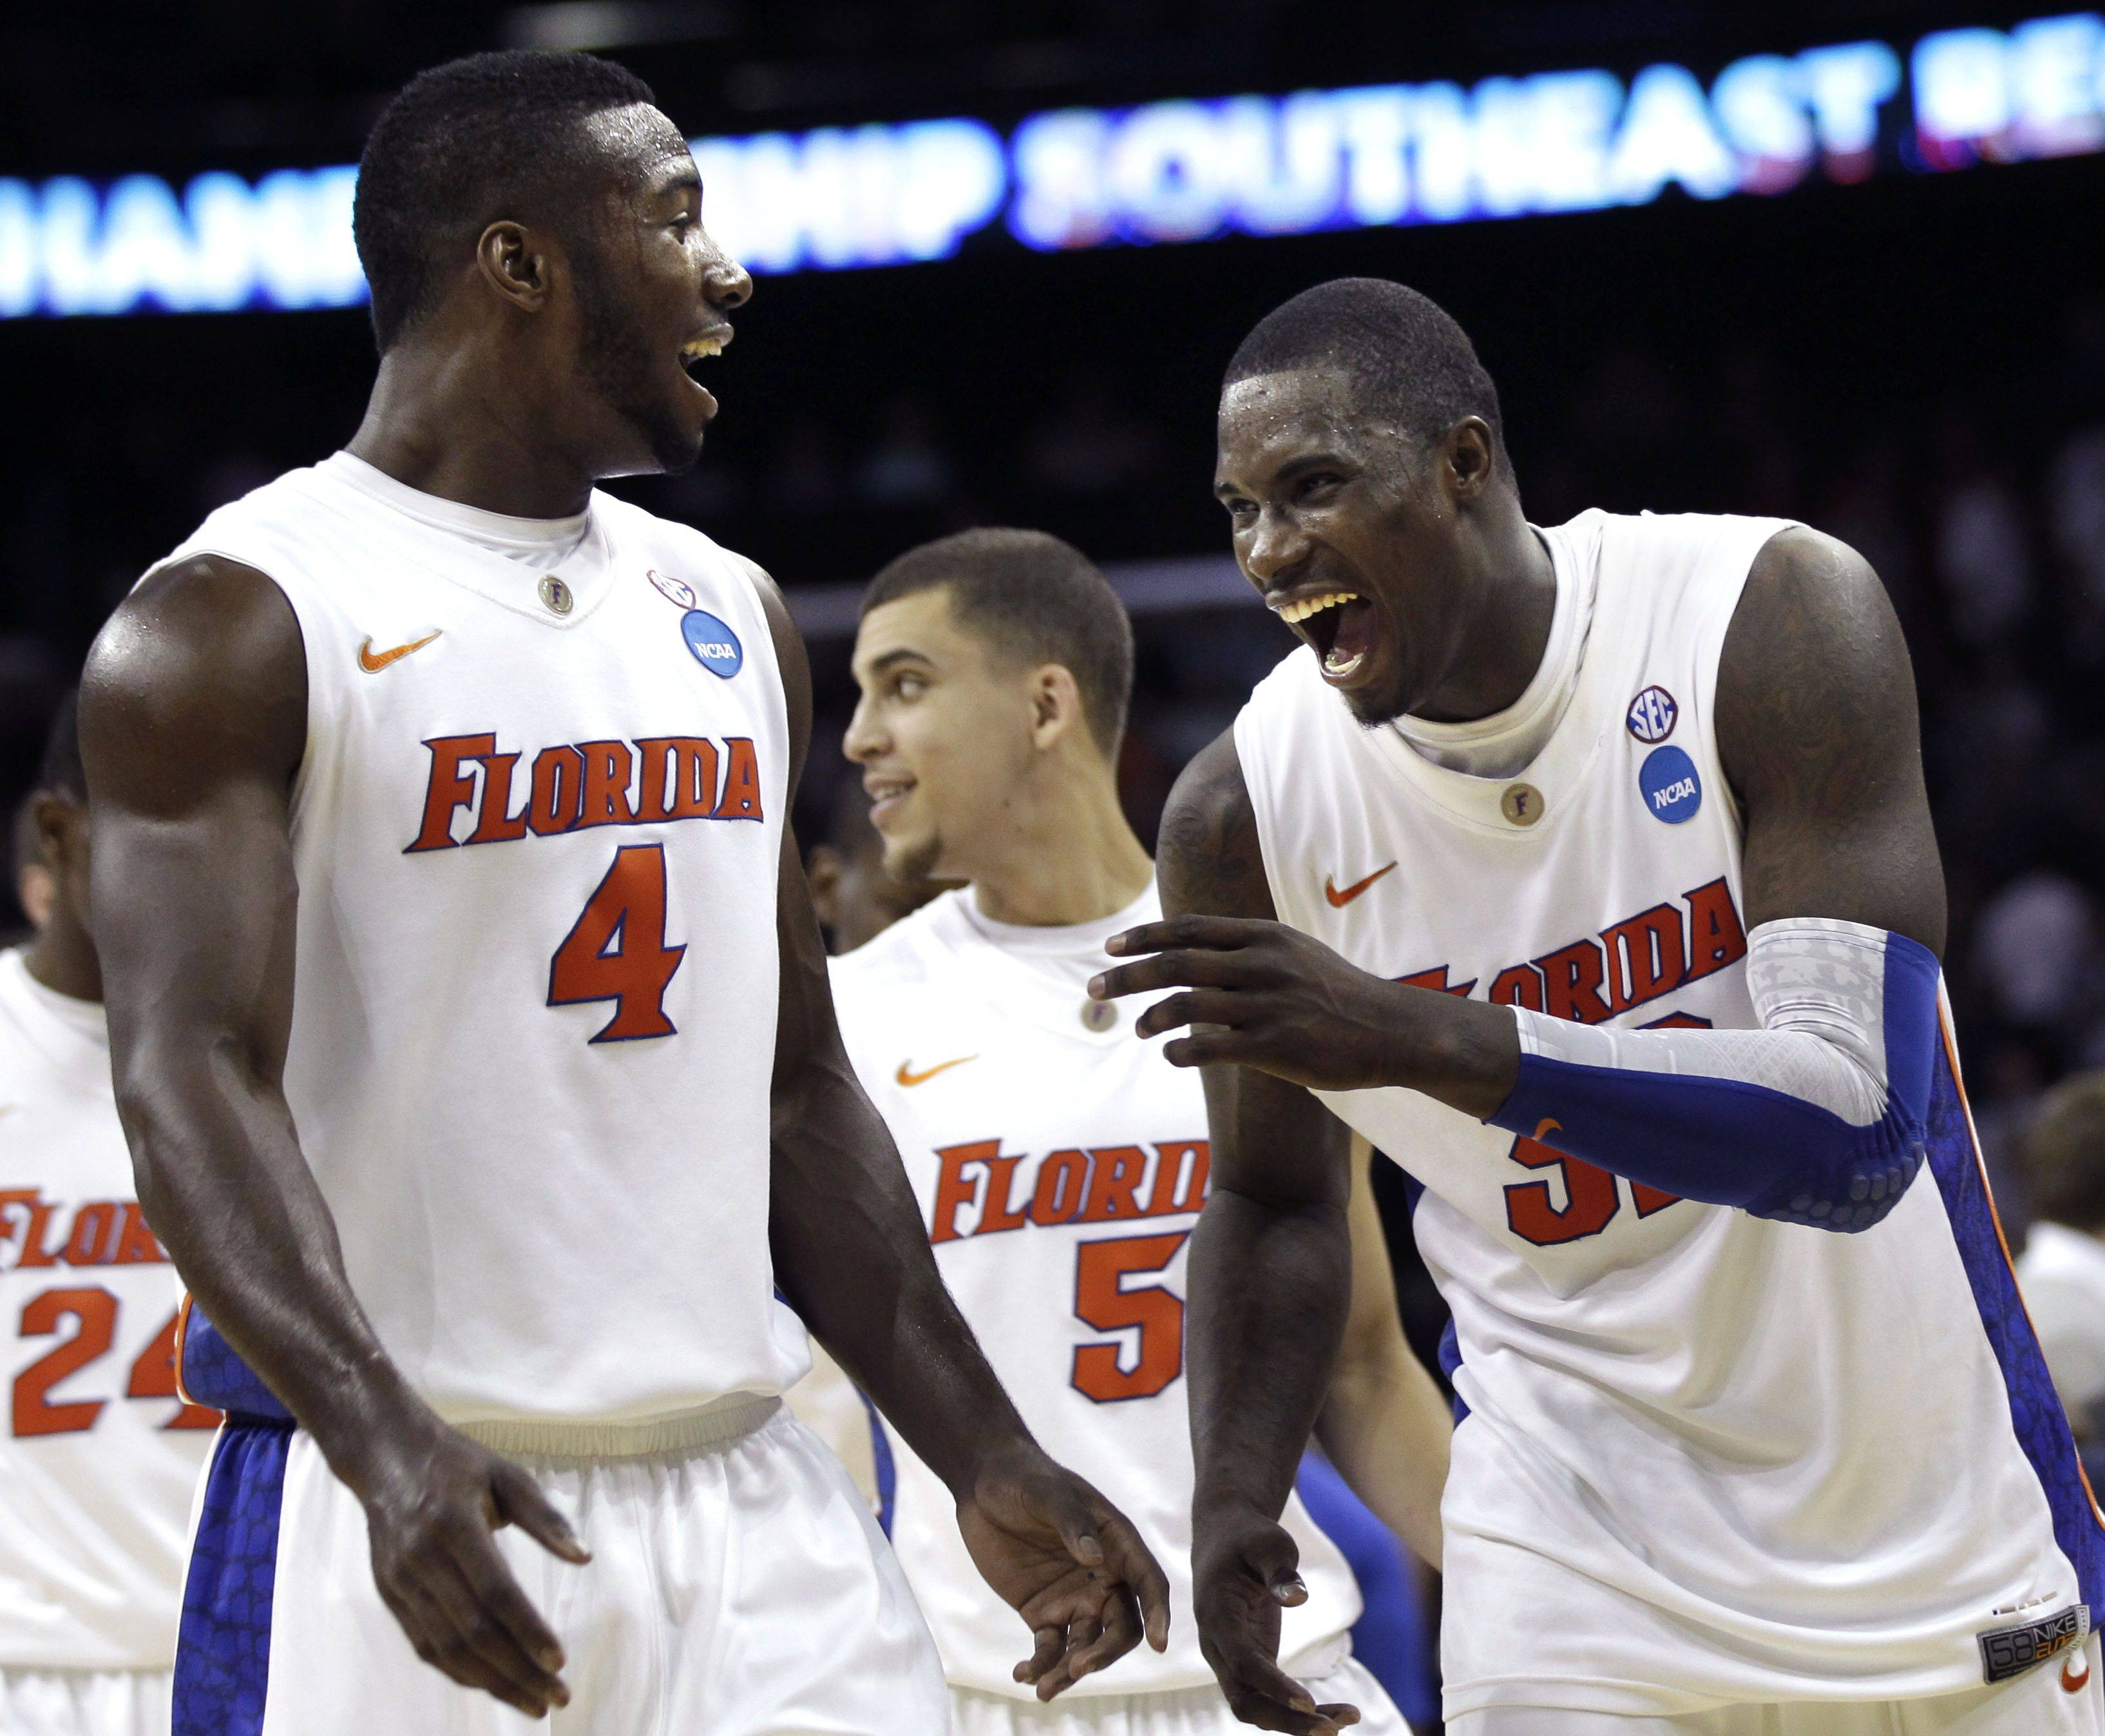 Florida's Patric Young, left, and Vernon Macklin celebrate Thursday night's victory over BYU.